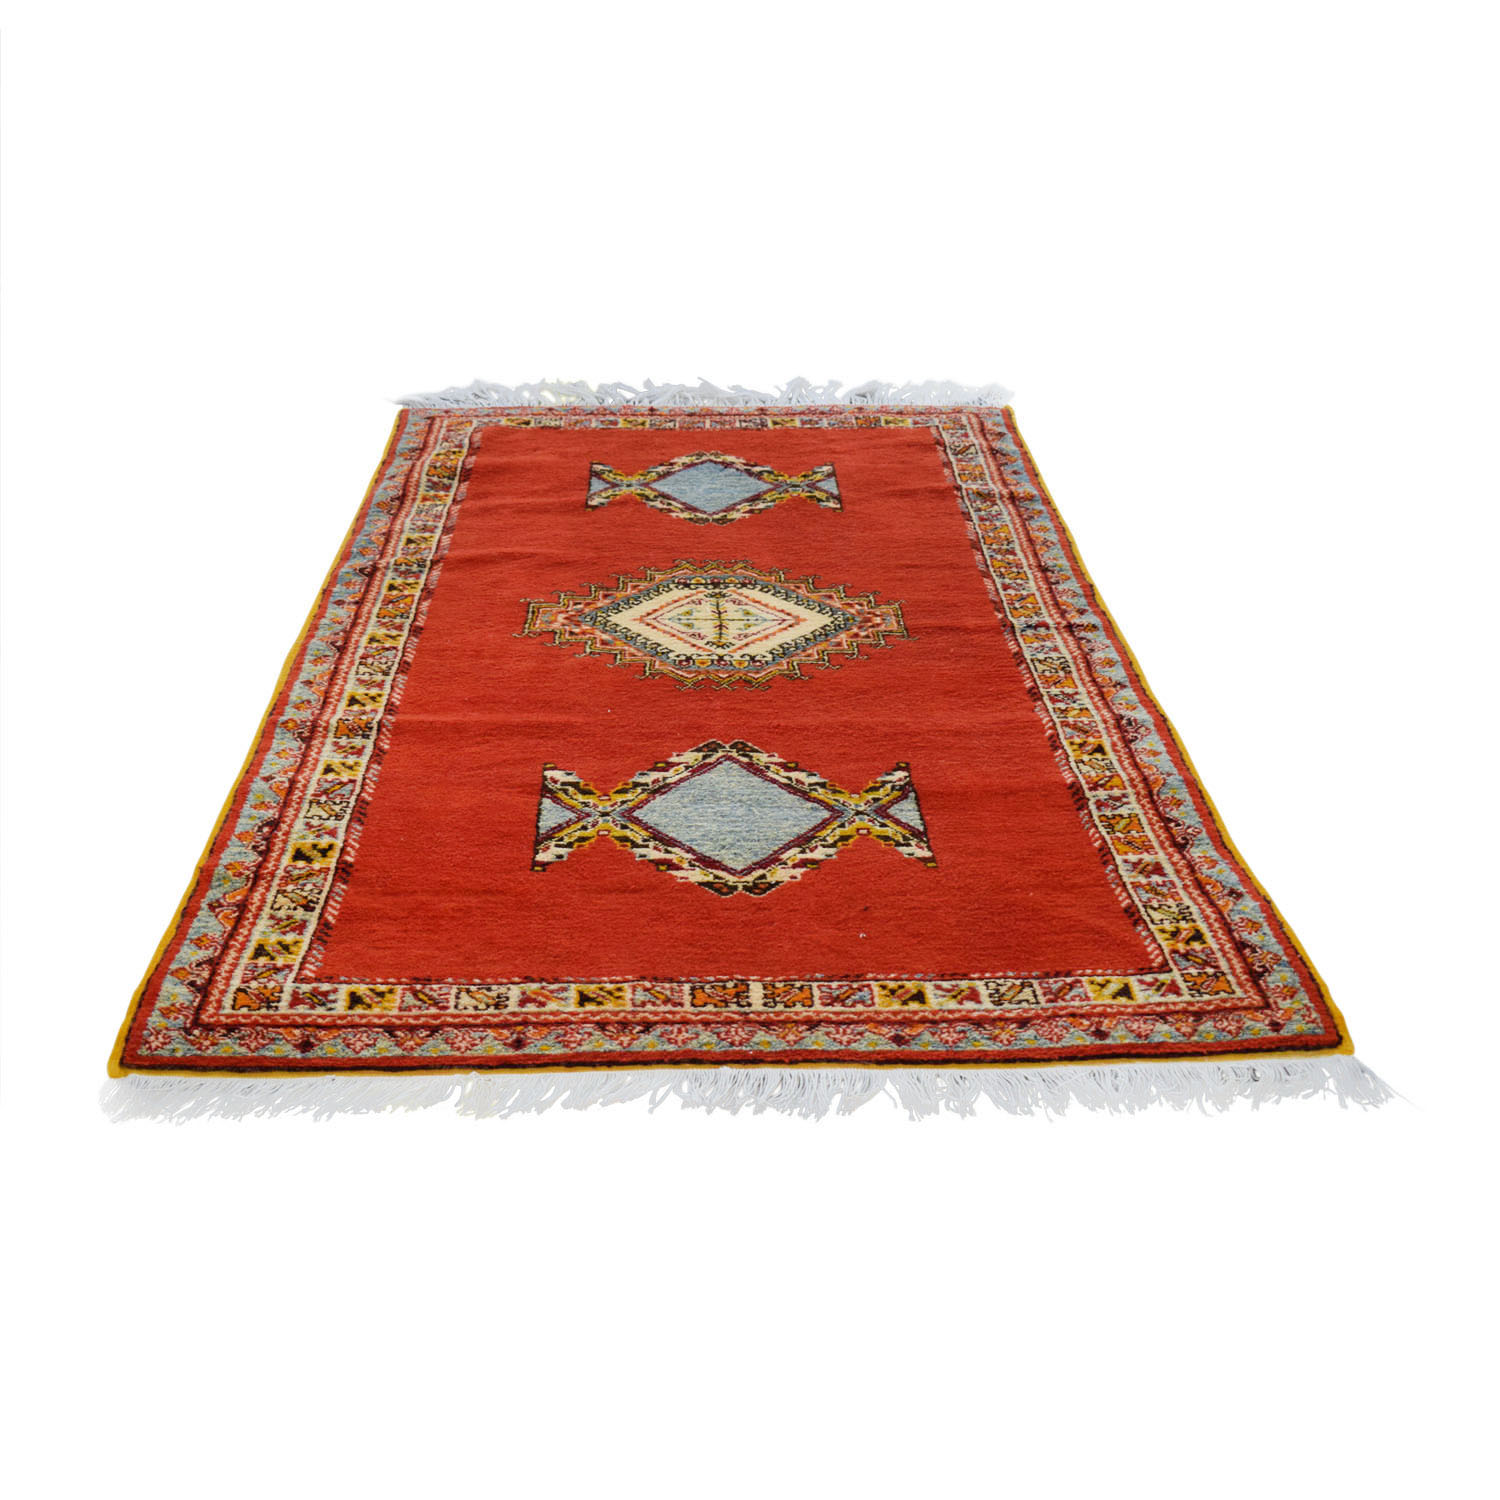 Vintage Red Multi-Colored Moroccan Rug nj